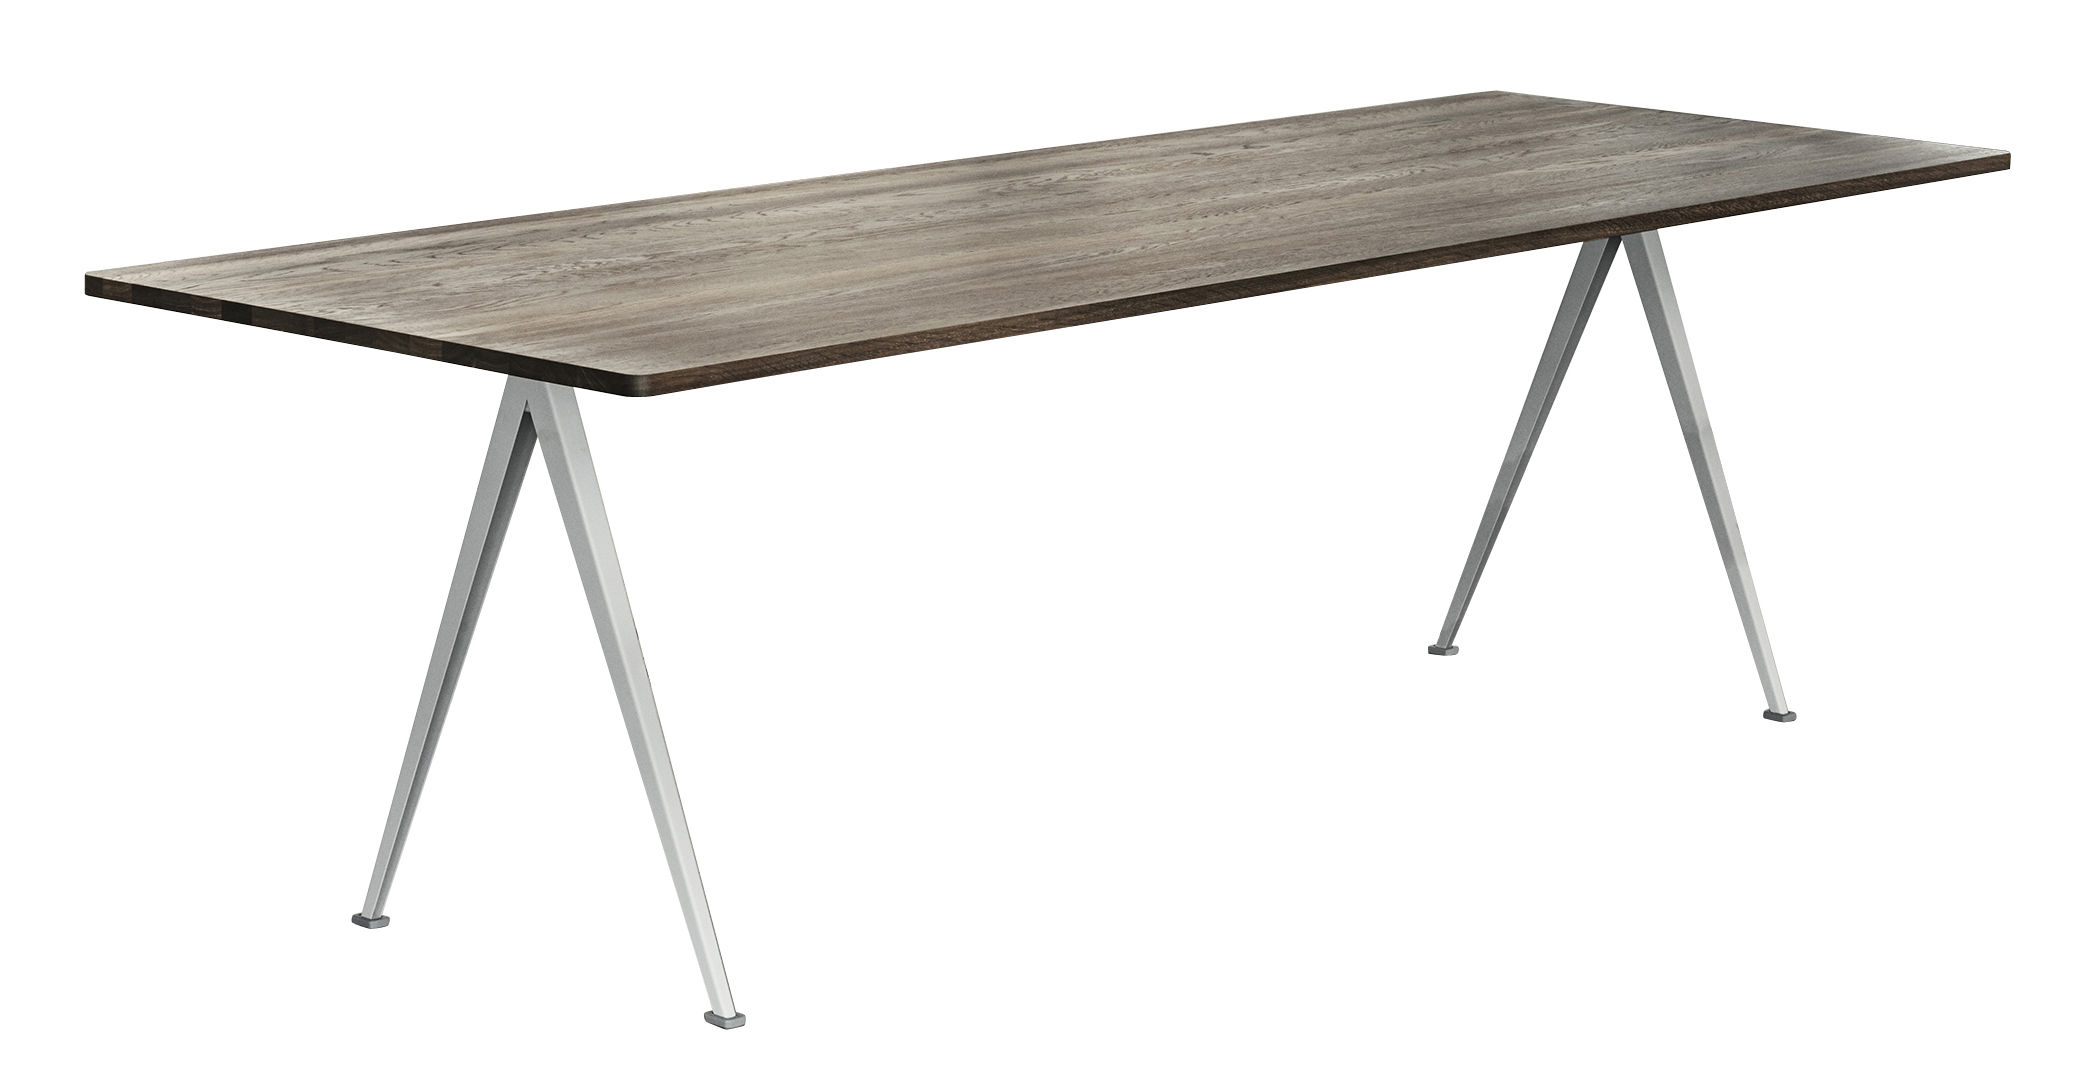 Furniture - Dining Tables - Pyramid n°02 Table rectangulaire - / 250 x 85 cm - Re-issue 1959 by Hay - 250 x 85 / Smoked oak & beige - Lacquered steel, Smoked oak